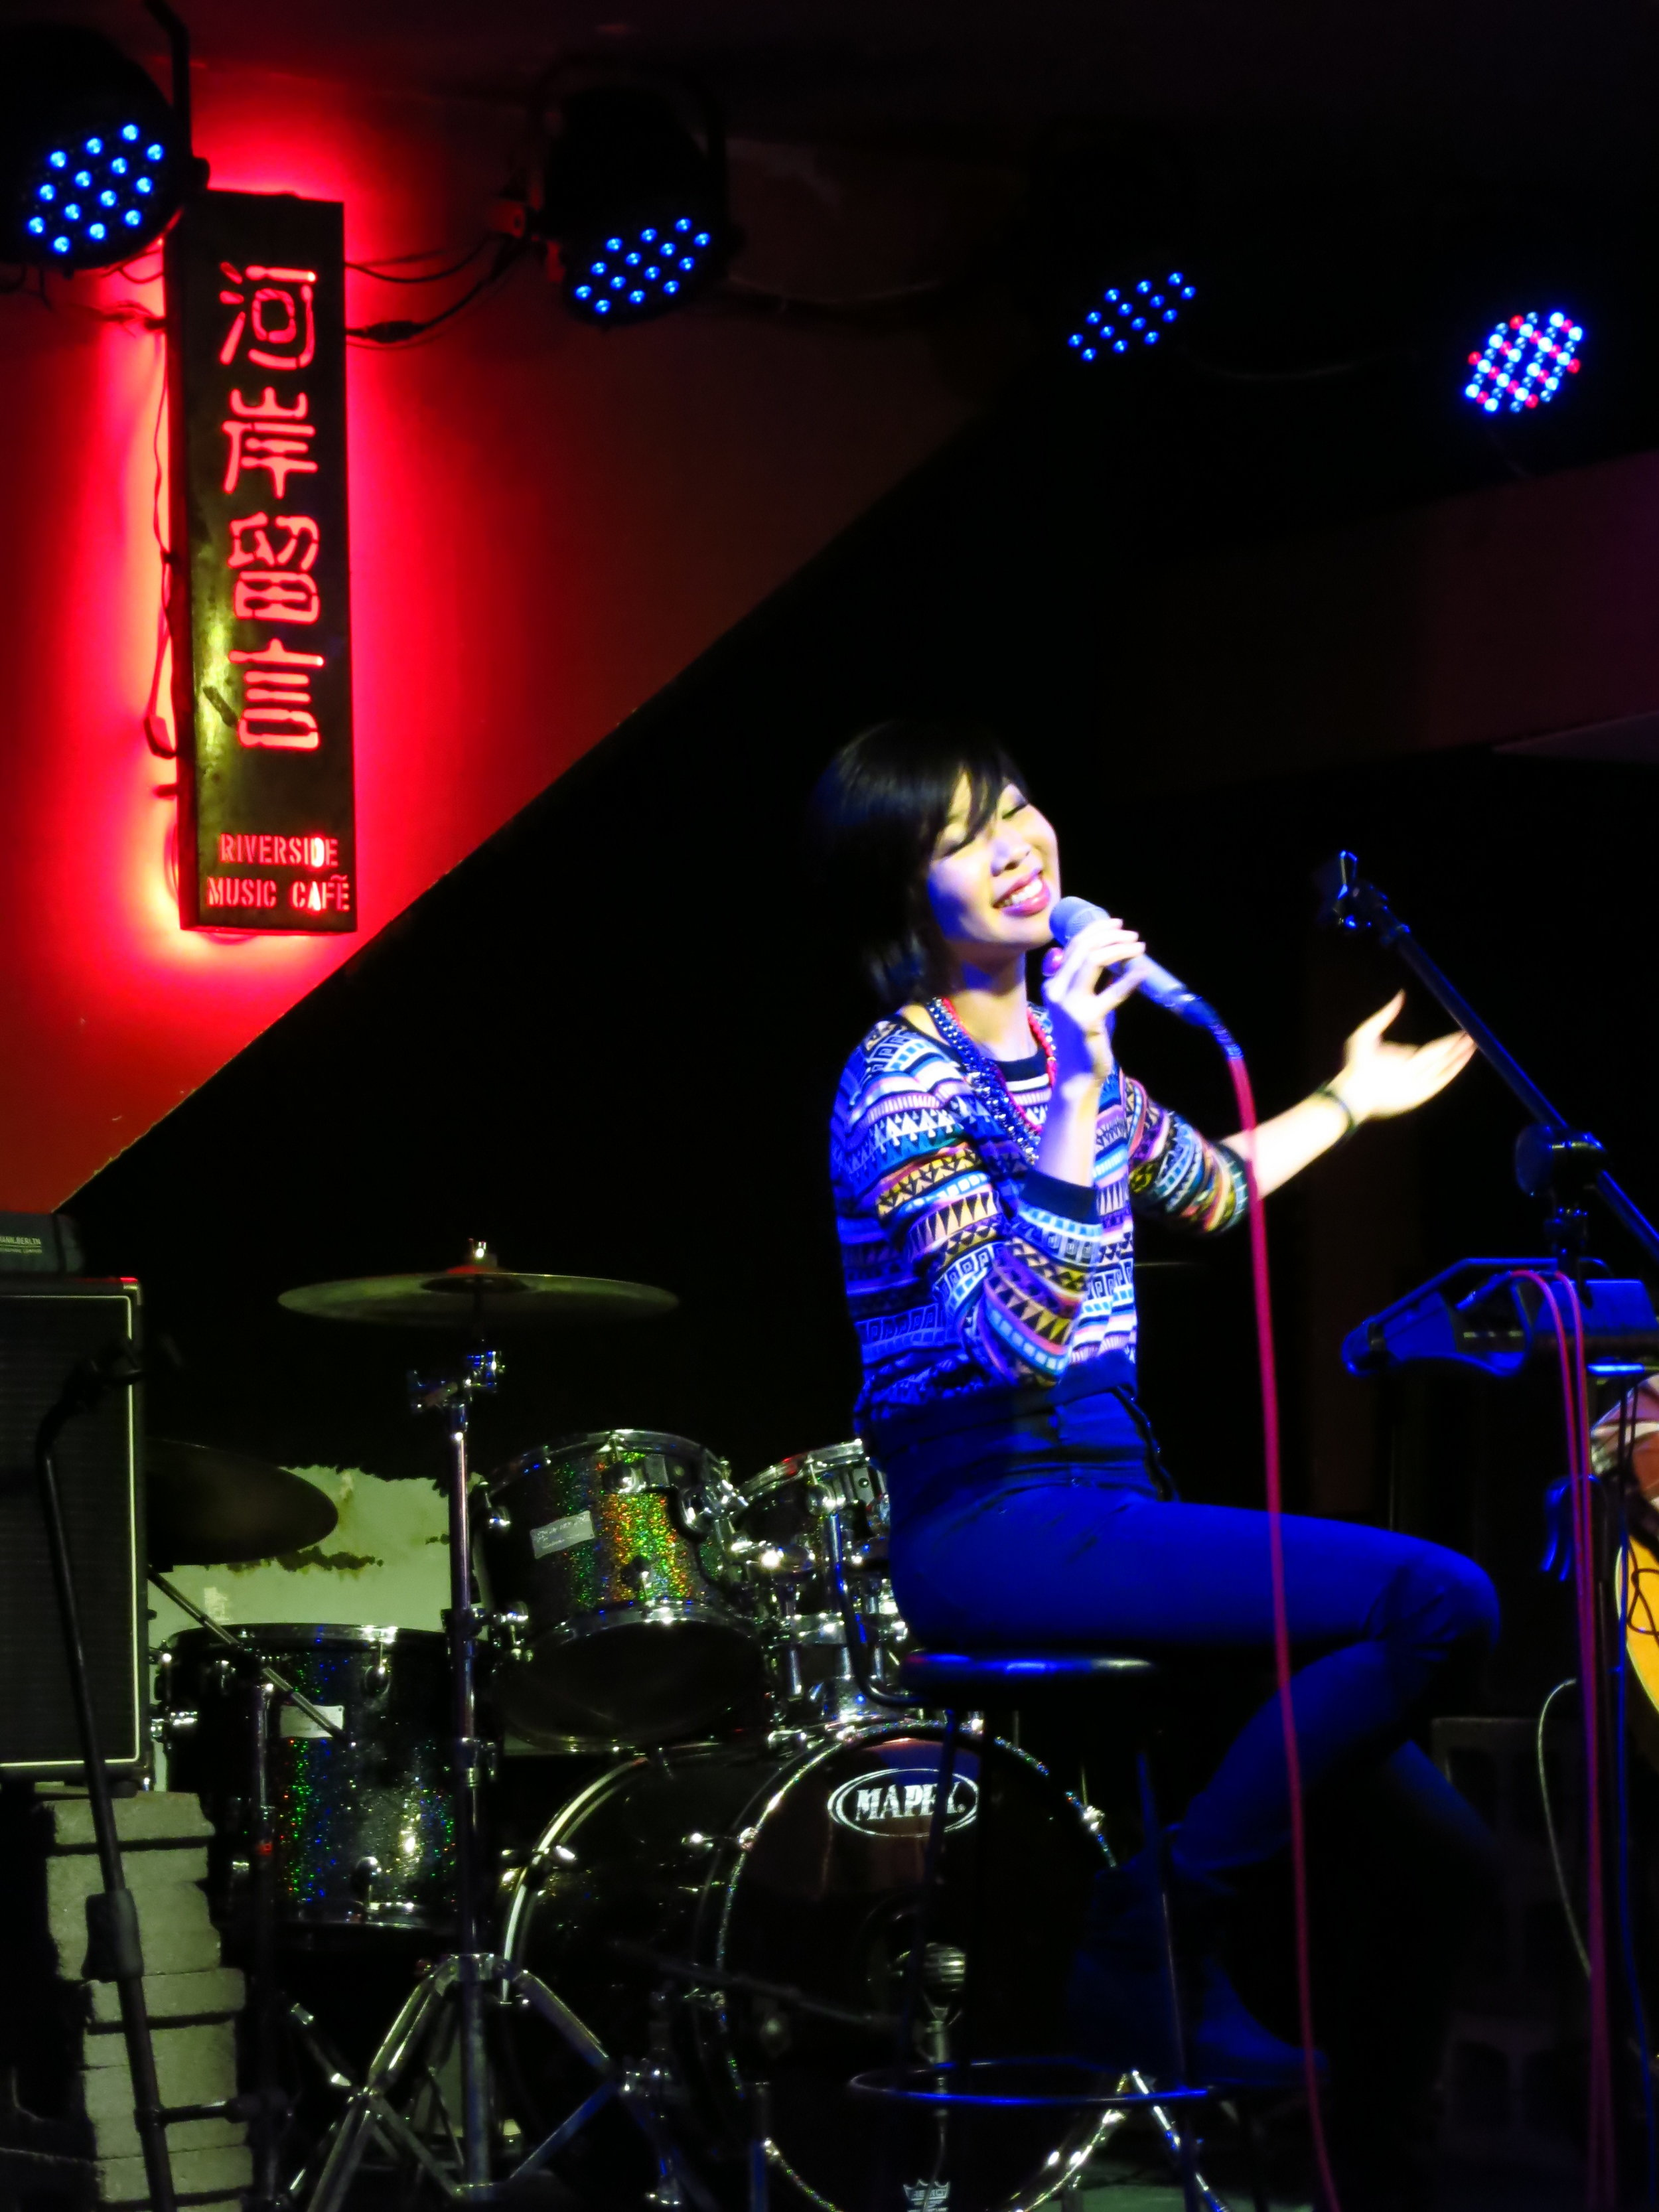 Live Performance for Riverside Music Cafe, Taipei (2014)